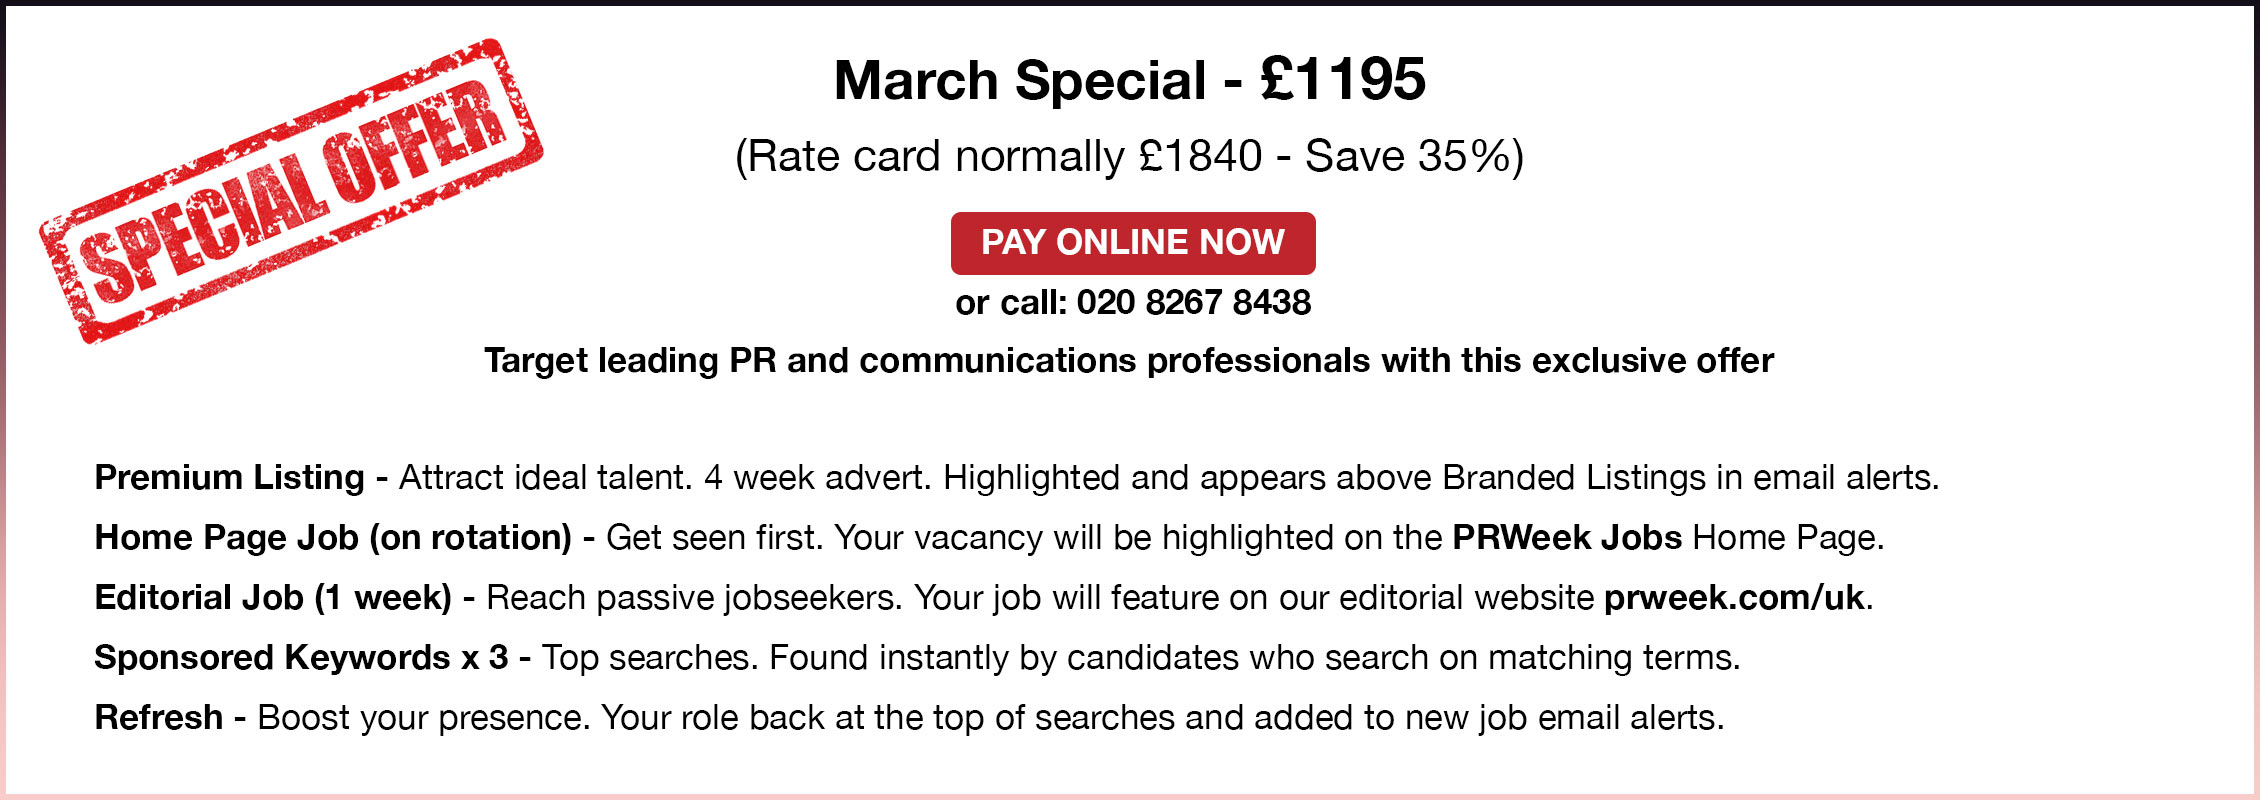 Special Offer. March Special - 1195.